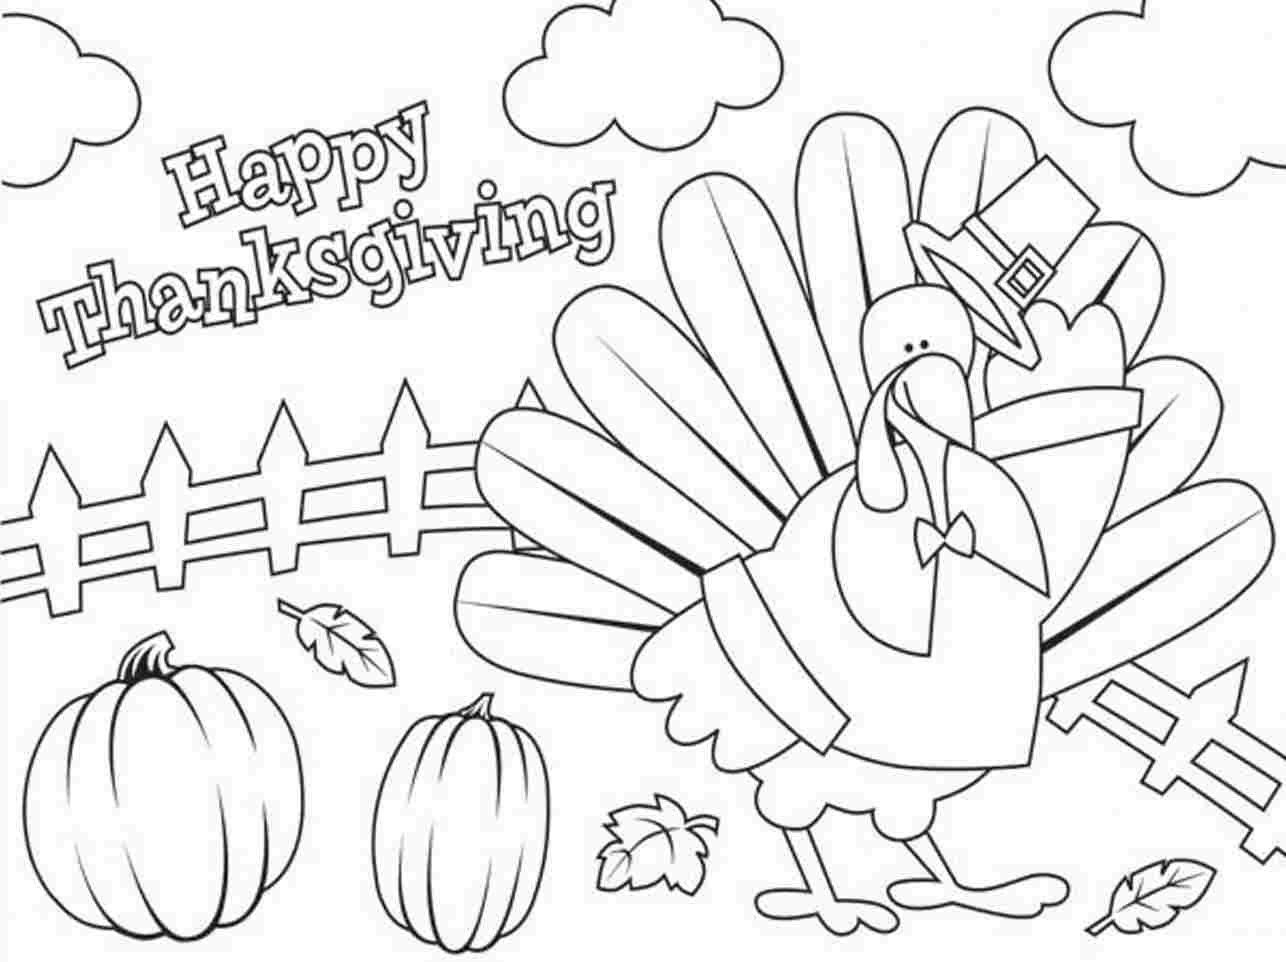 Thanksgiving Day Coloring Pages Free New Printable Happy Thanksgiving Coloring Pages Built Imagination